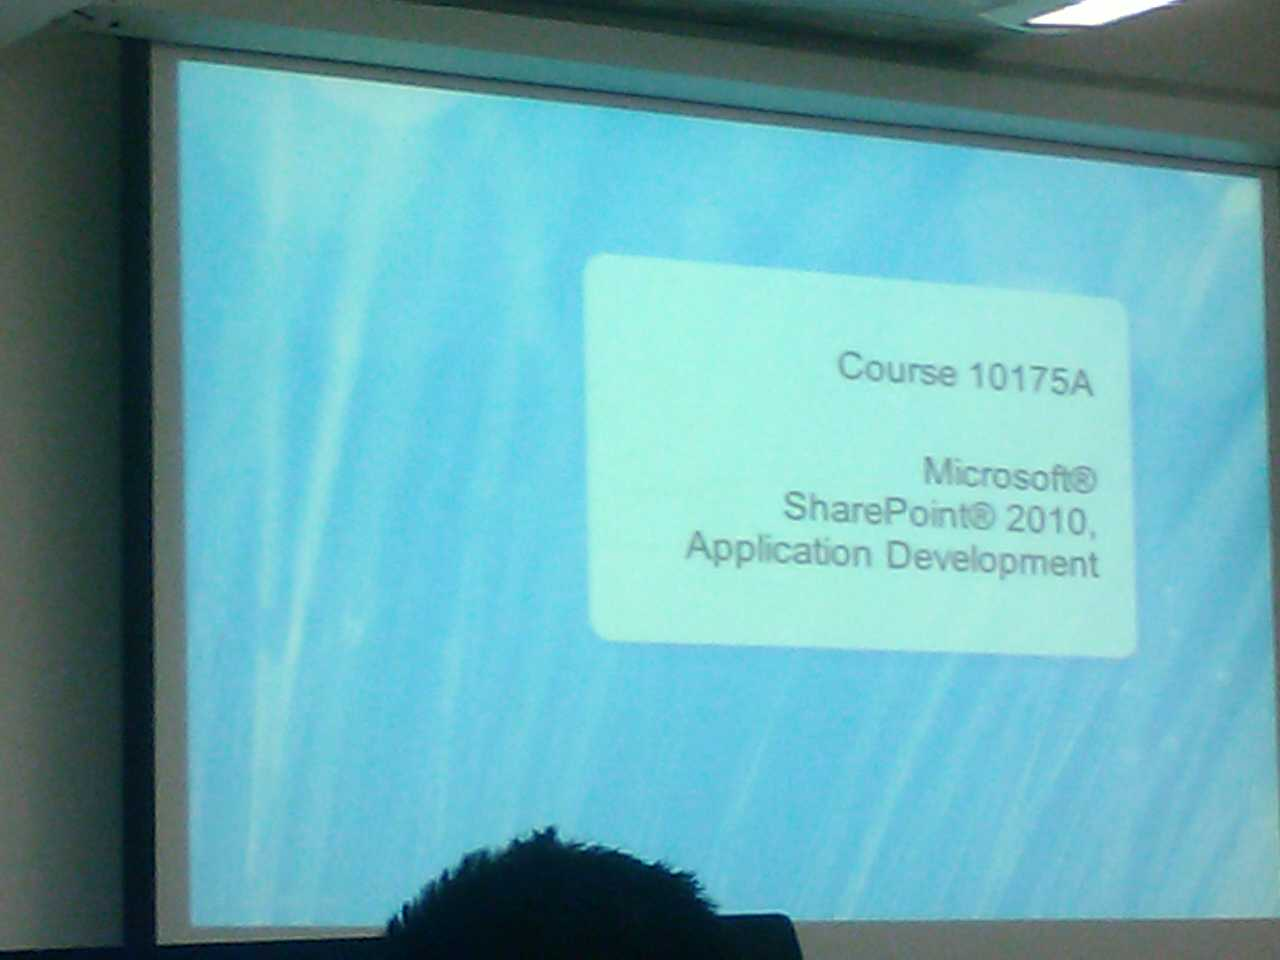 Curso 10175 Microsoft SharePoint 2010 Application